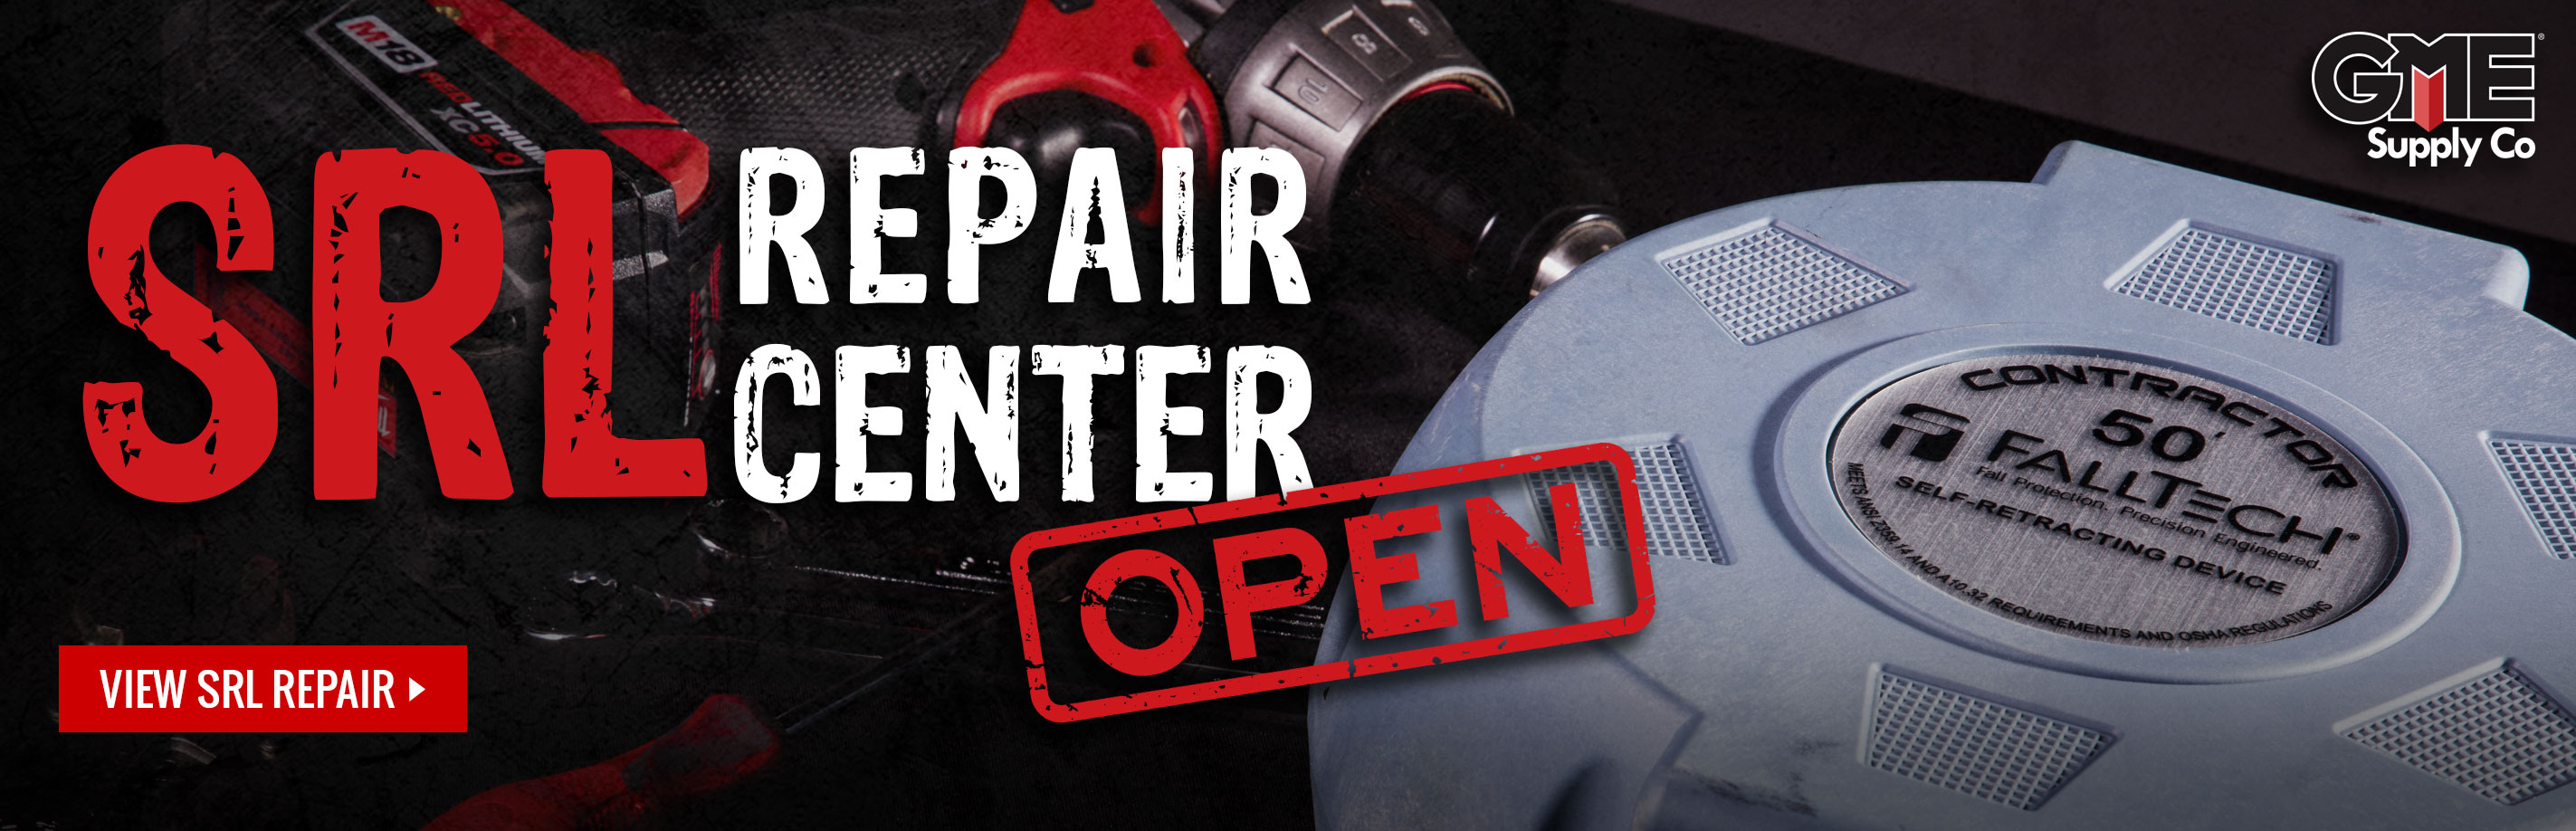 SRL and Bosch Tool Repair center GME Supply